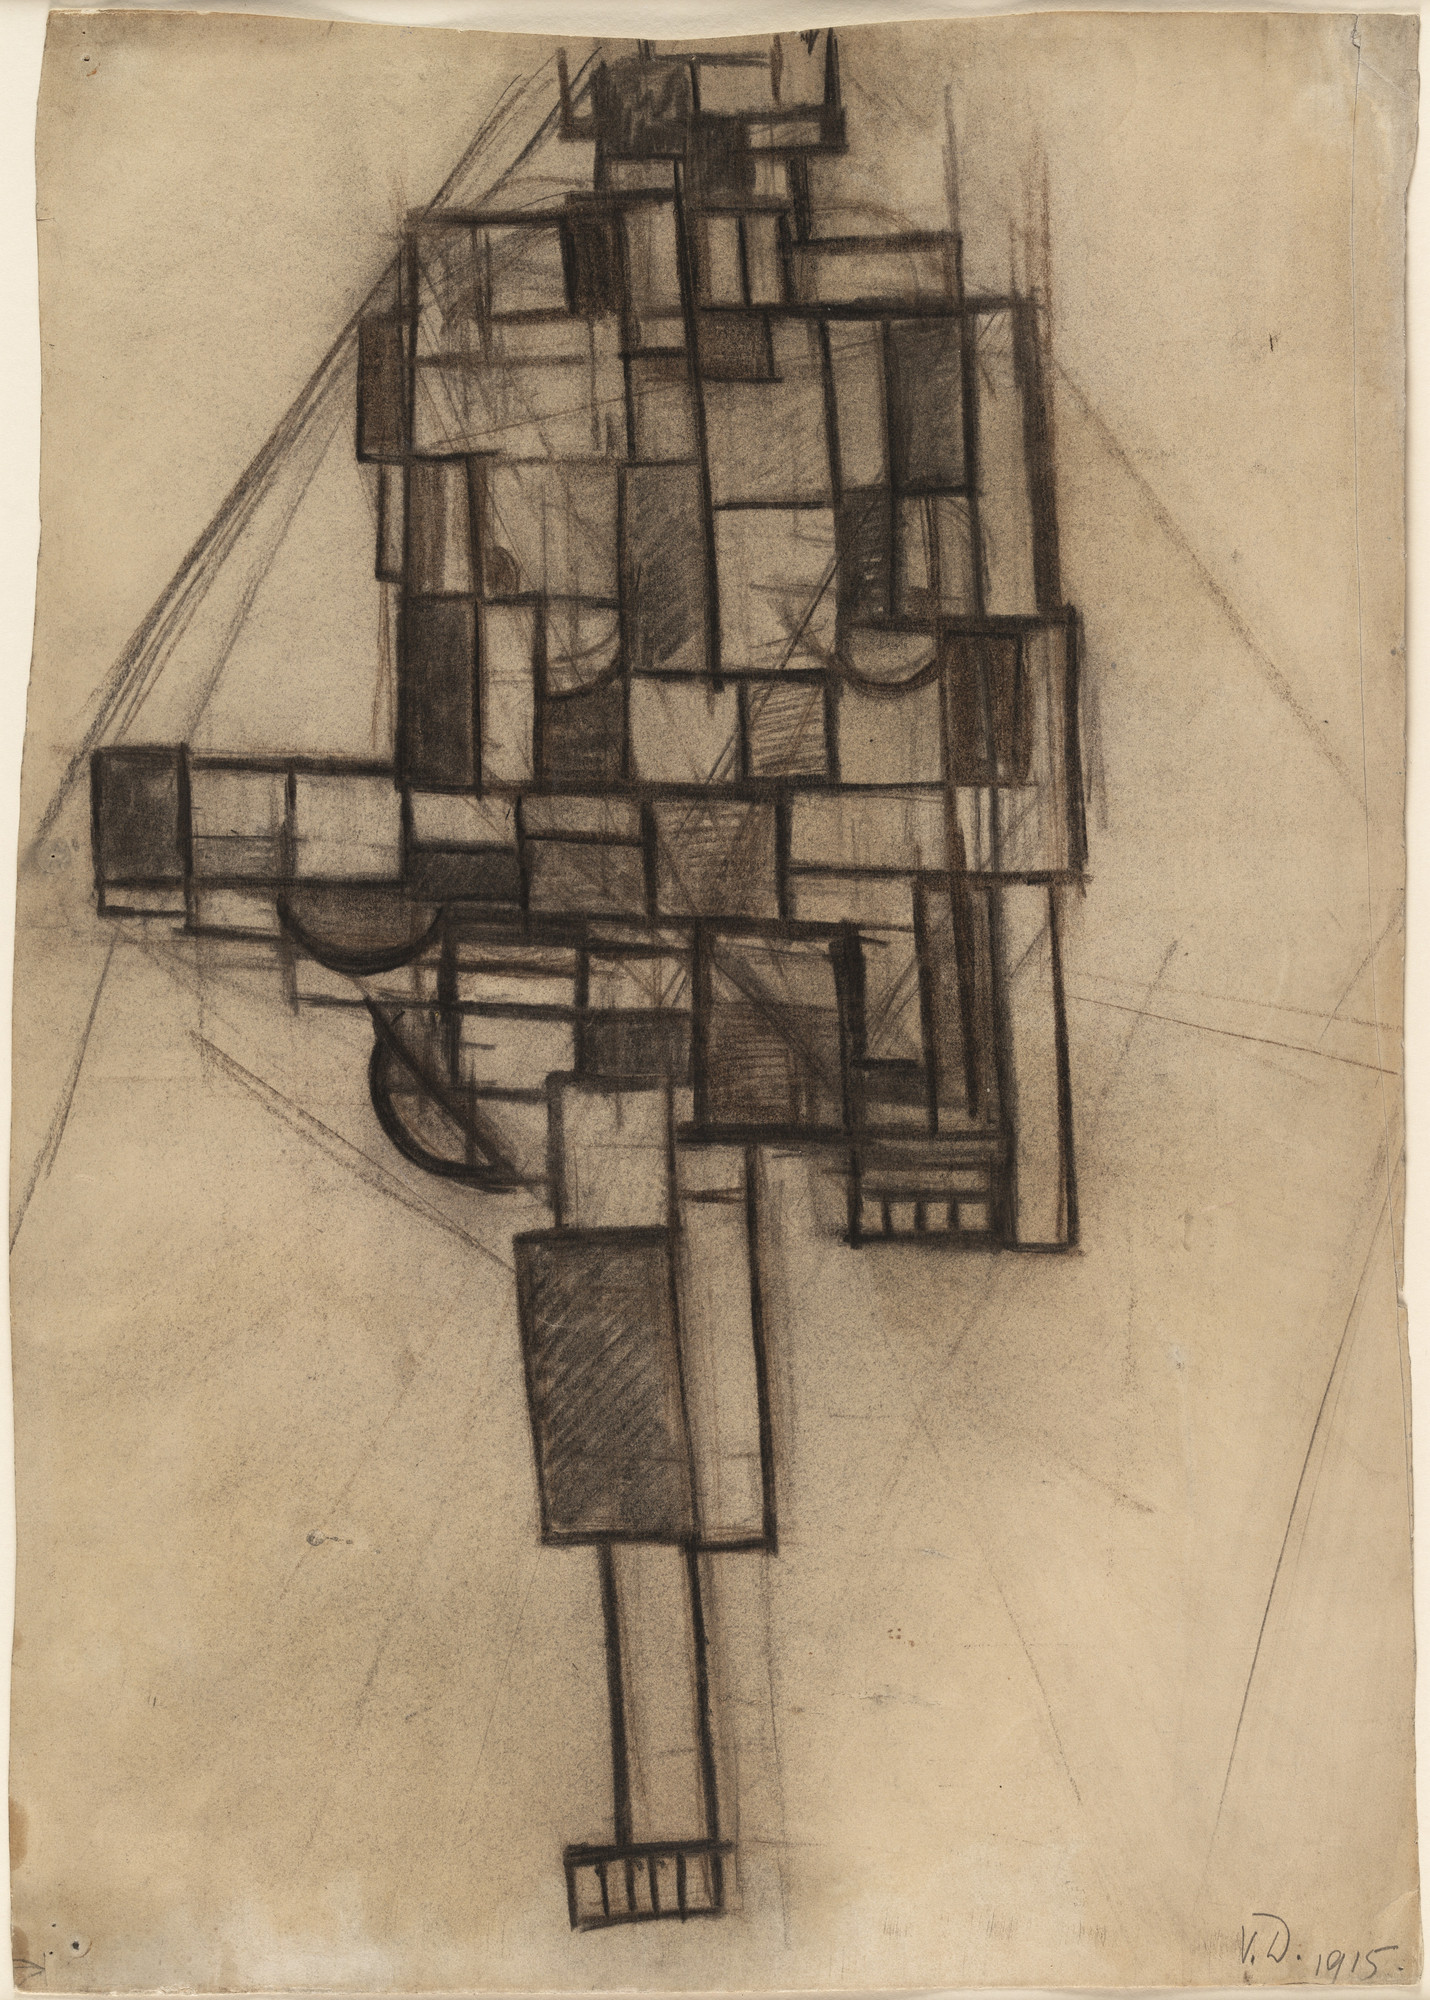 Theo van Doesburg (Christian Emil Marie Küpper). Composition. (1917) (inscribed 1915)